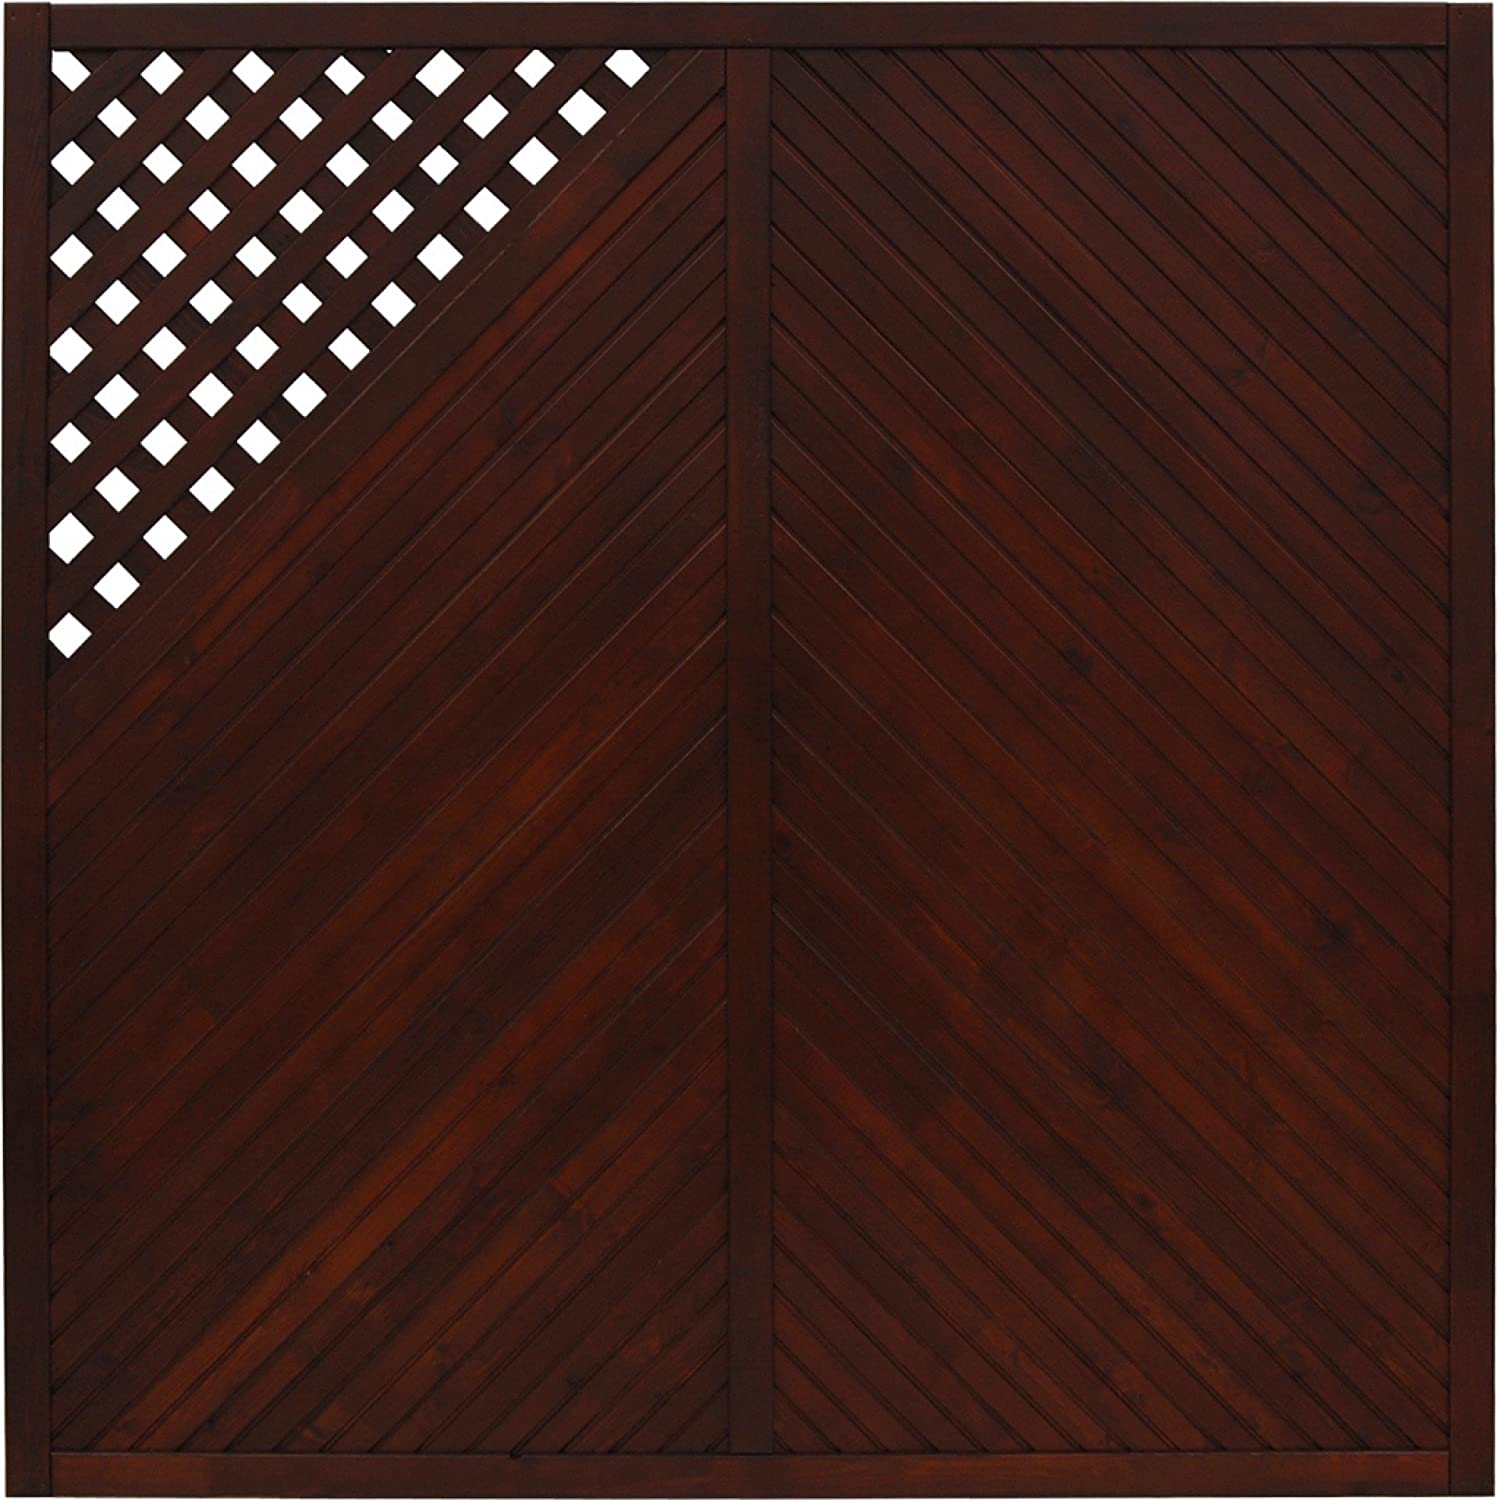 Andrewex wooden fence 180x 180, varnished, brown, garden fence, privacy, fencing panel